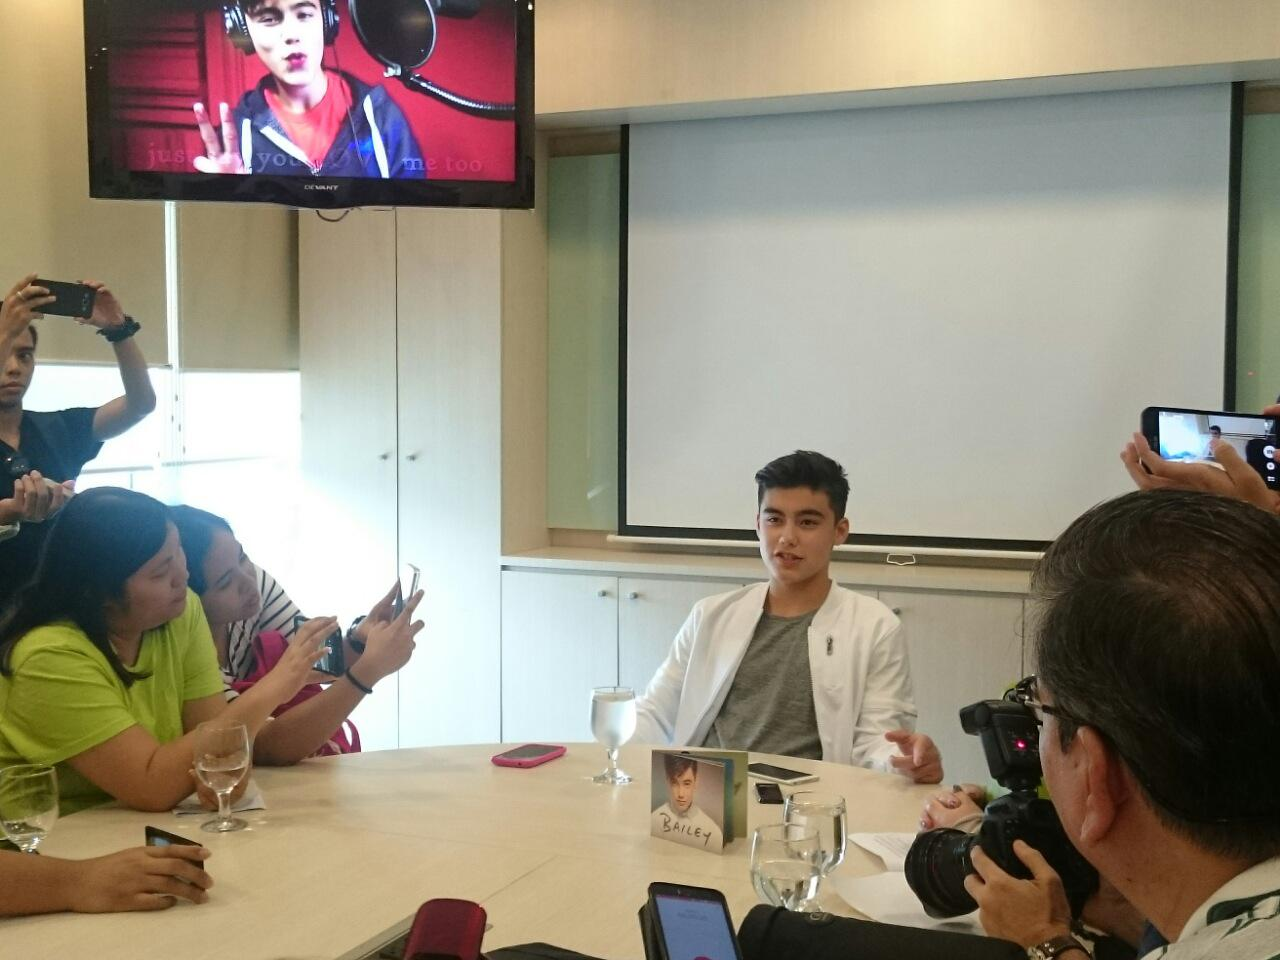 A Dream come true for PBB's Global Gwapito of UK!